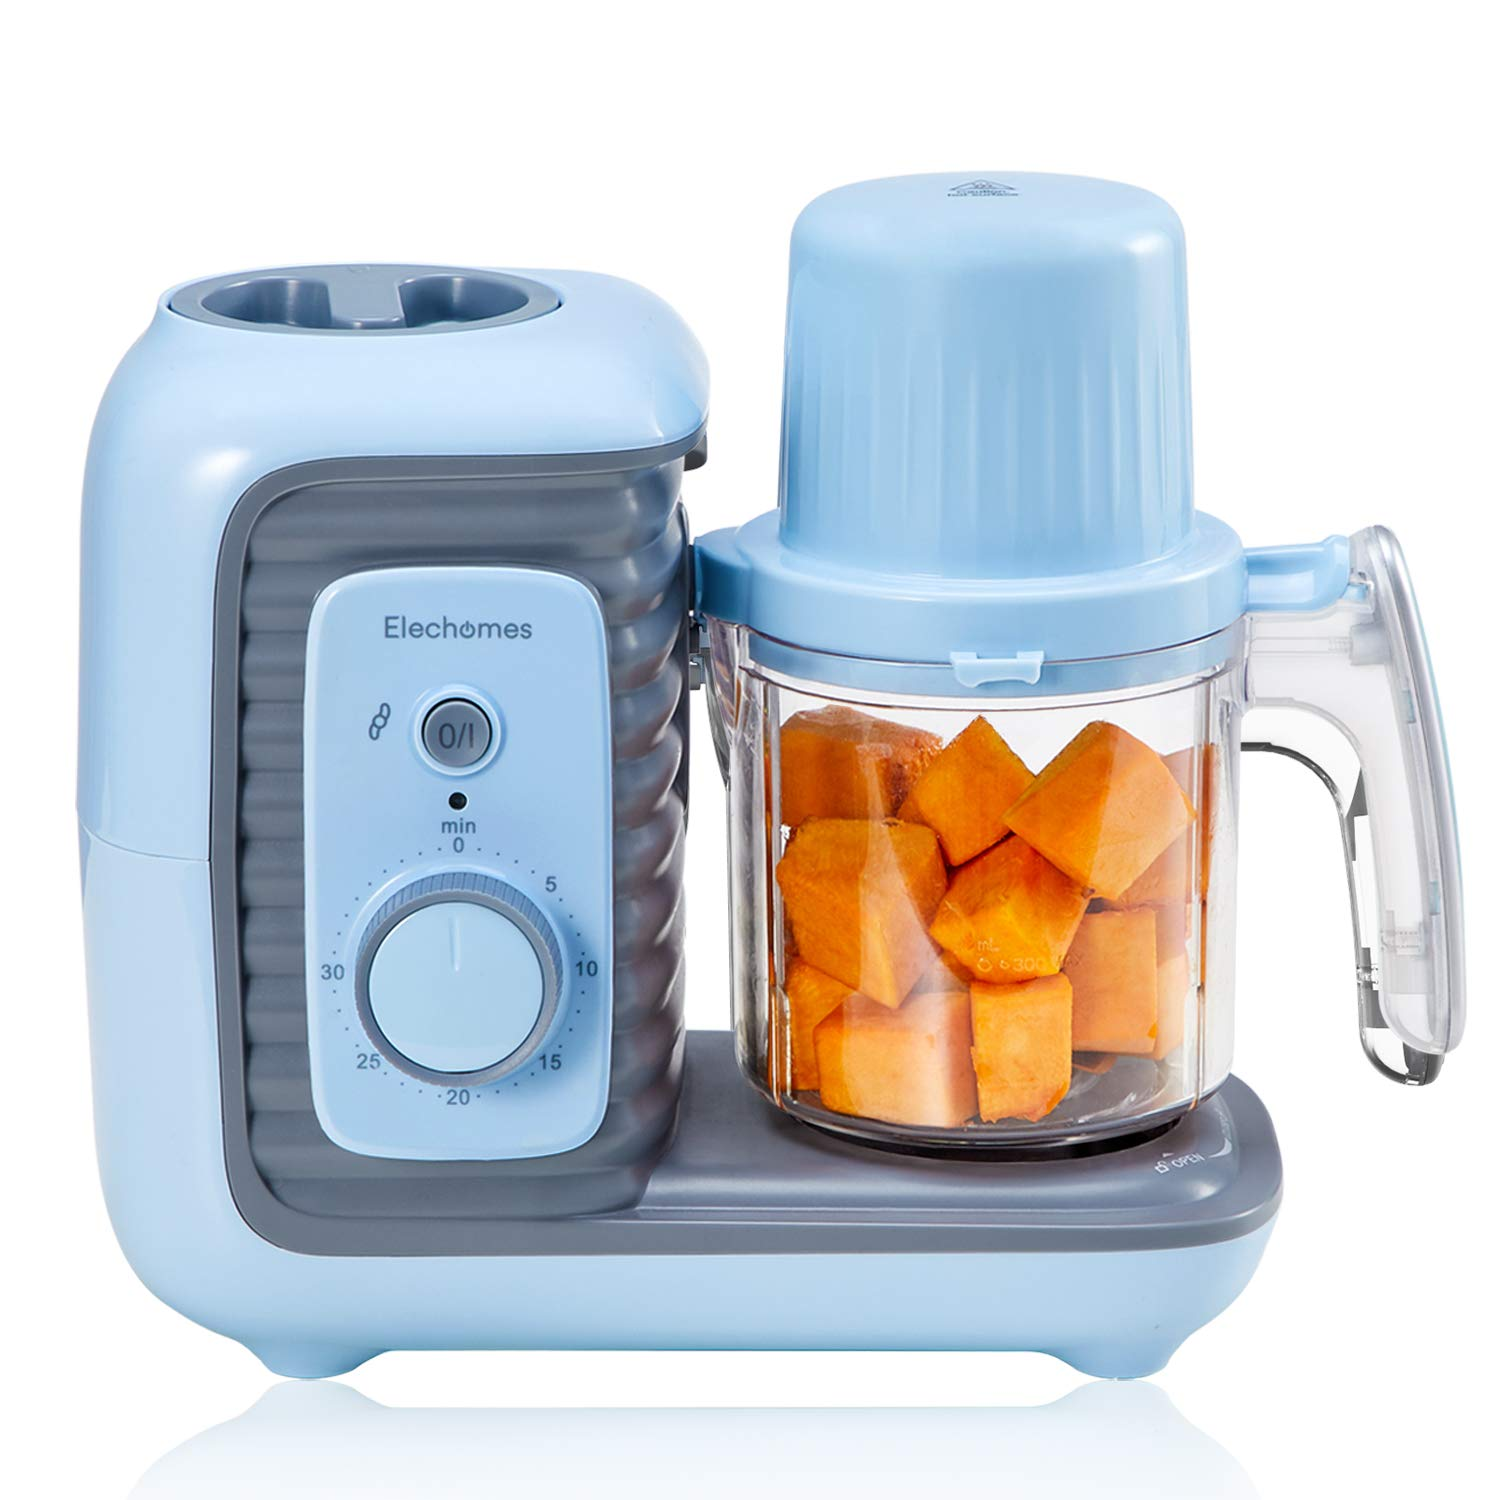 Baby Food Maker, 8 in 1 Elechomes Baby Food Processor Blender Grinder Steamer, for Healthy Homemade Baby Food Mills Machine, Self Cleans and Timer Control, Auto Shut-Off